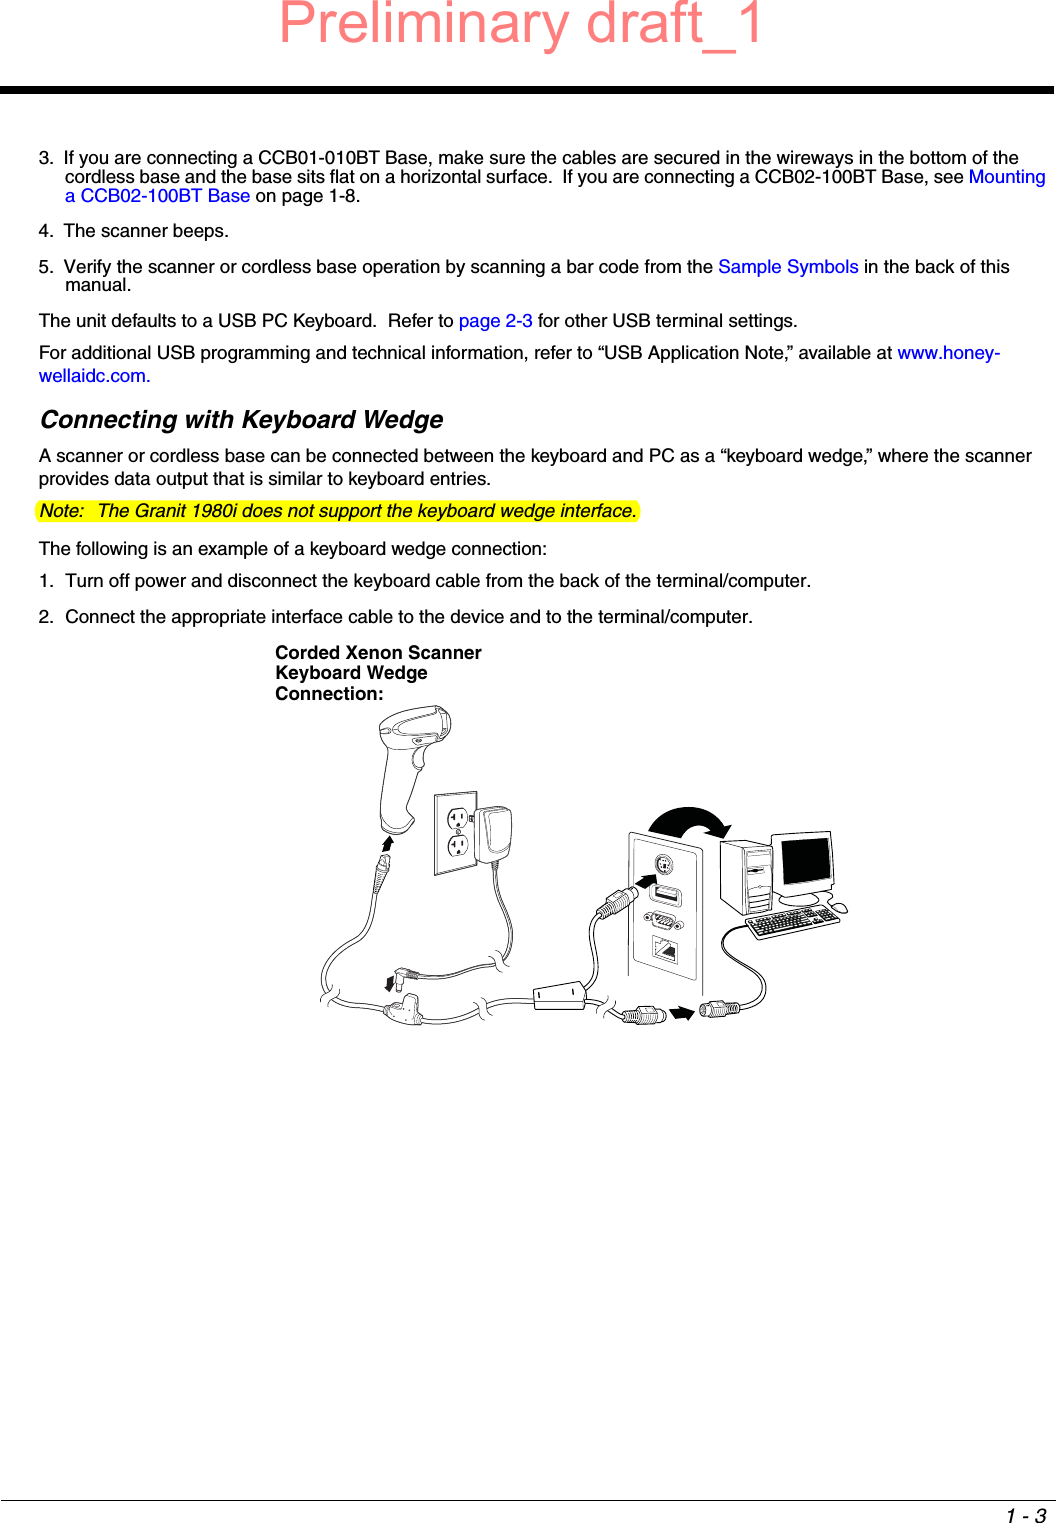 eyoyo barcode scanner user manual